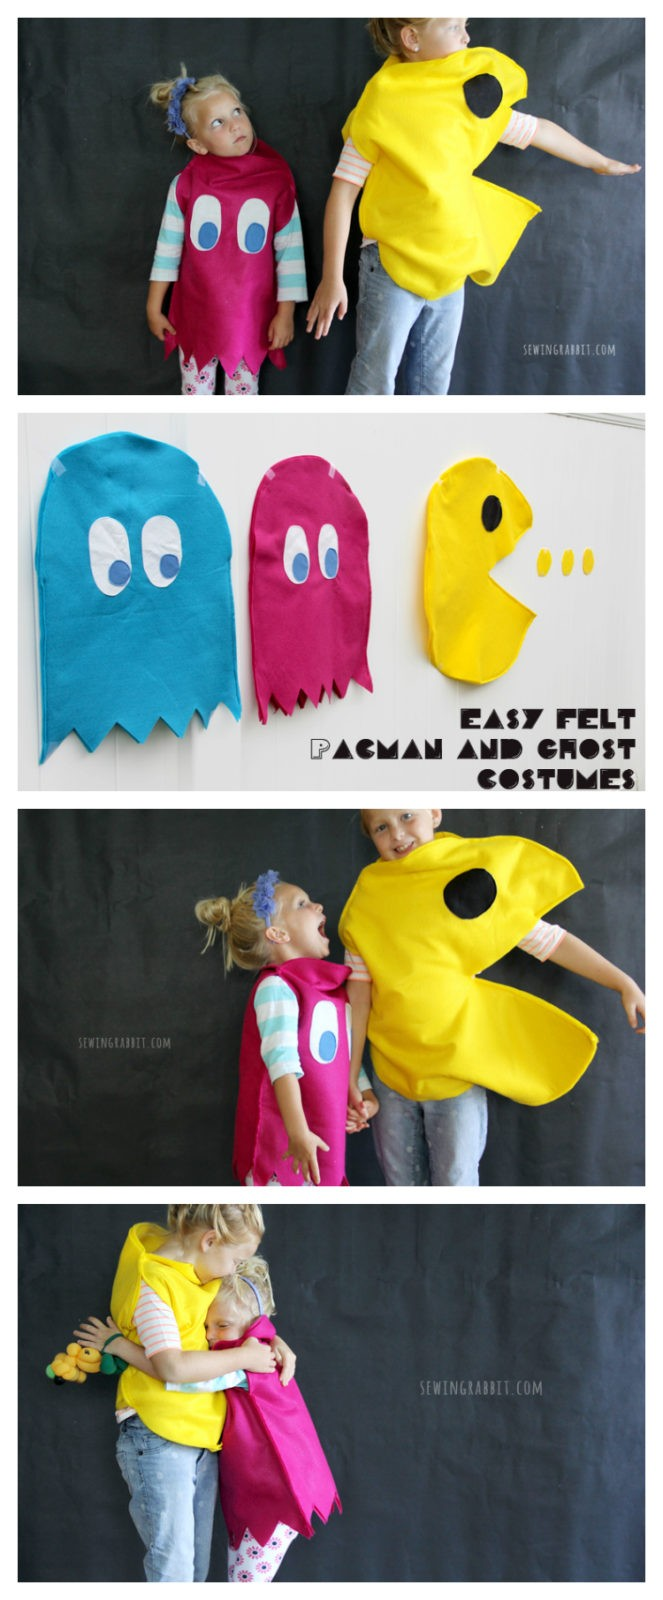 Easy Felt Handmade Costume - Pac-Man & Ghosts